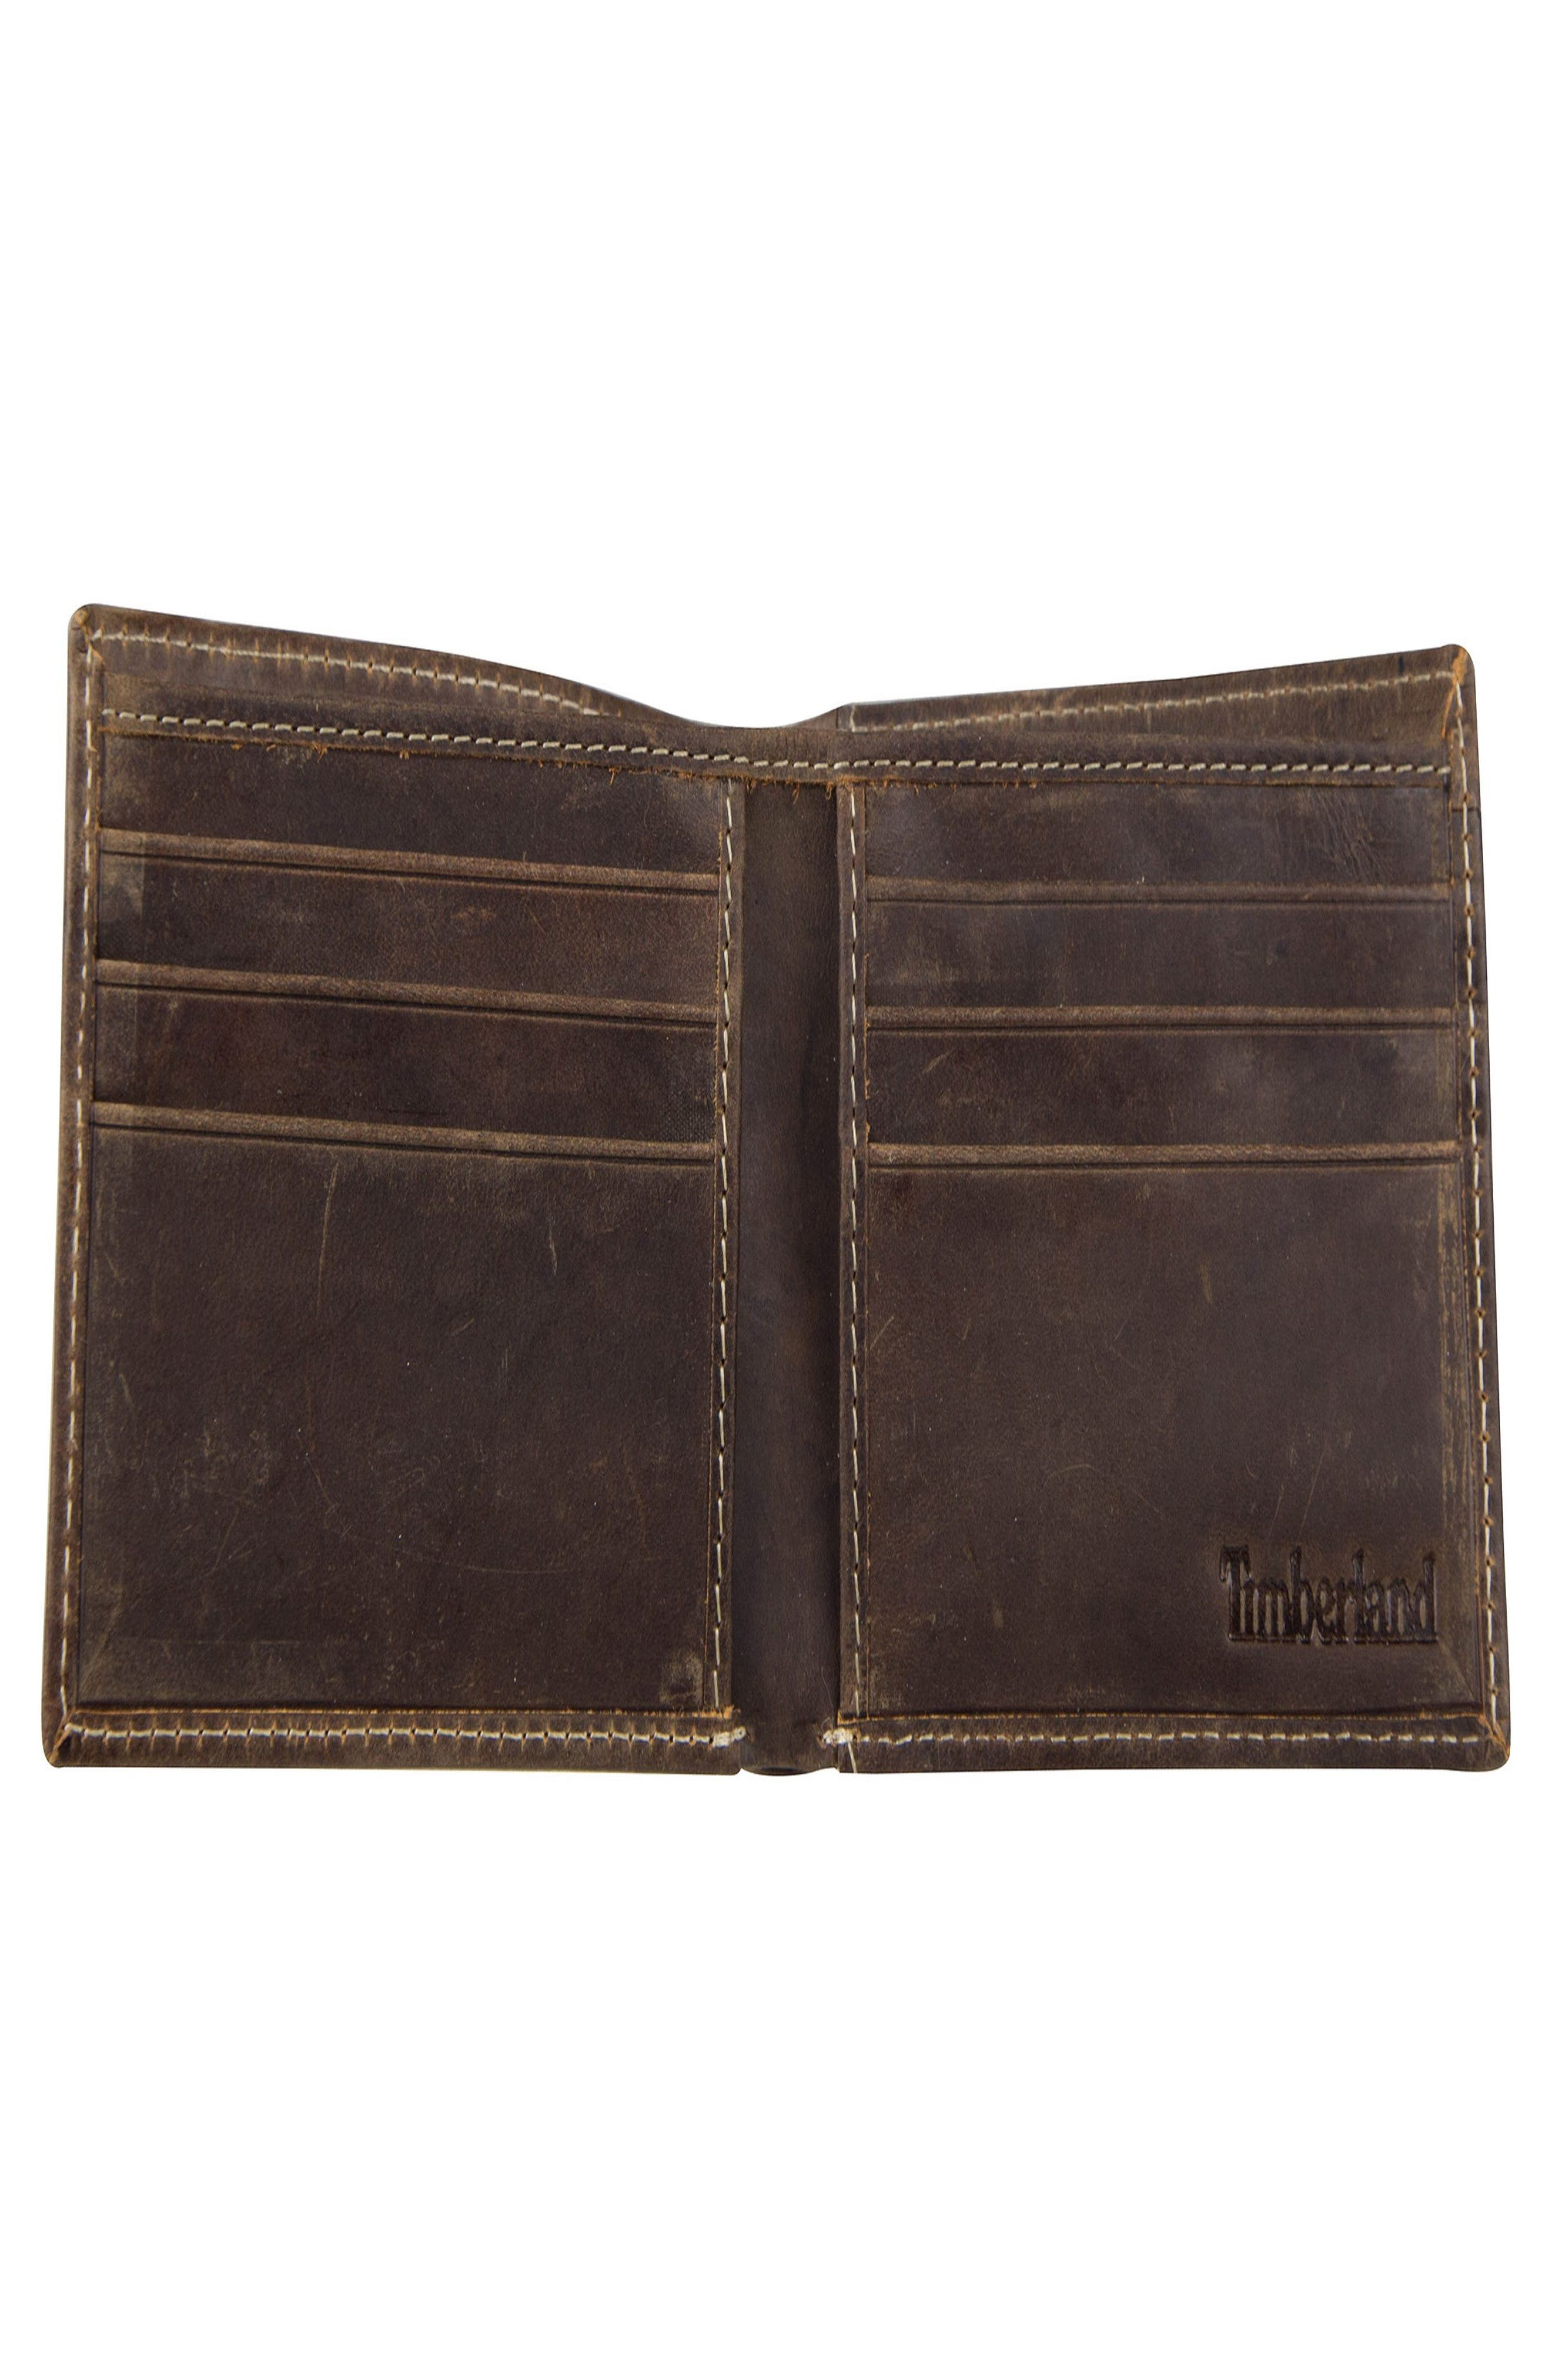 Distressed Leather Wallet,                             Alternate thumbnail 2, color,                             200